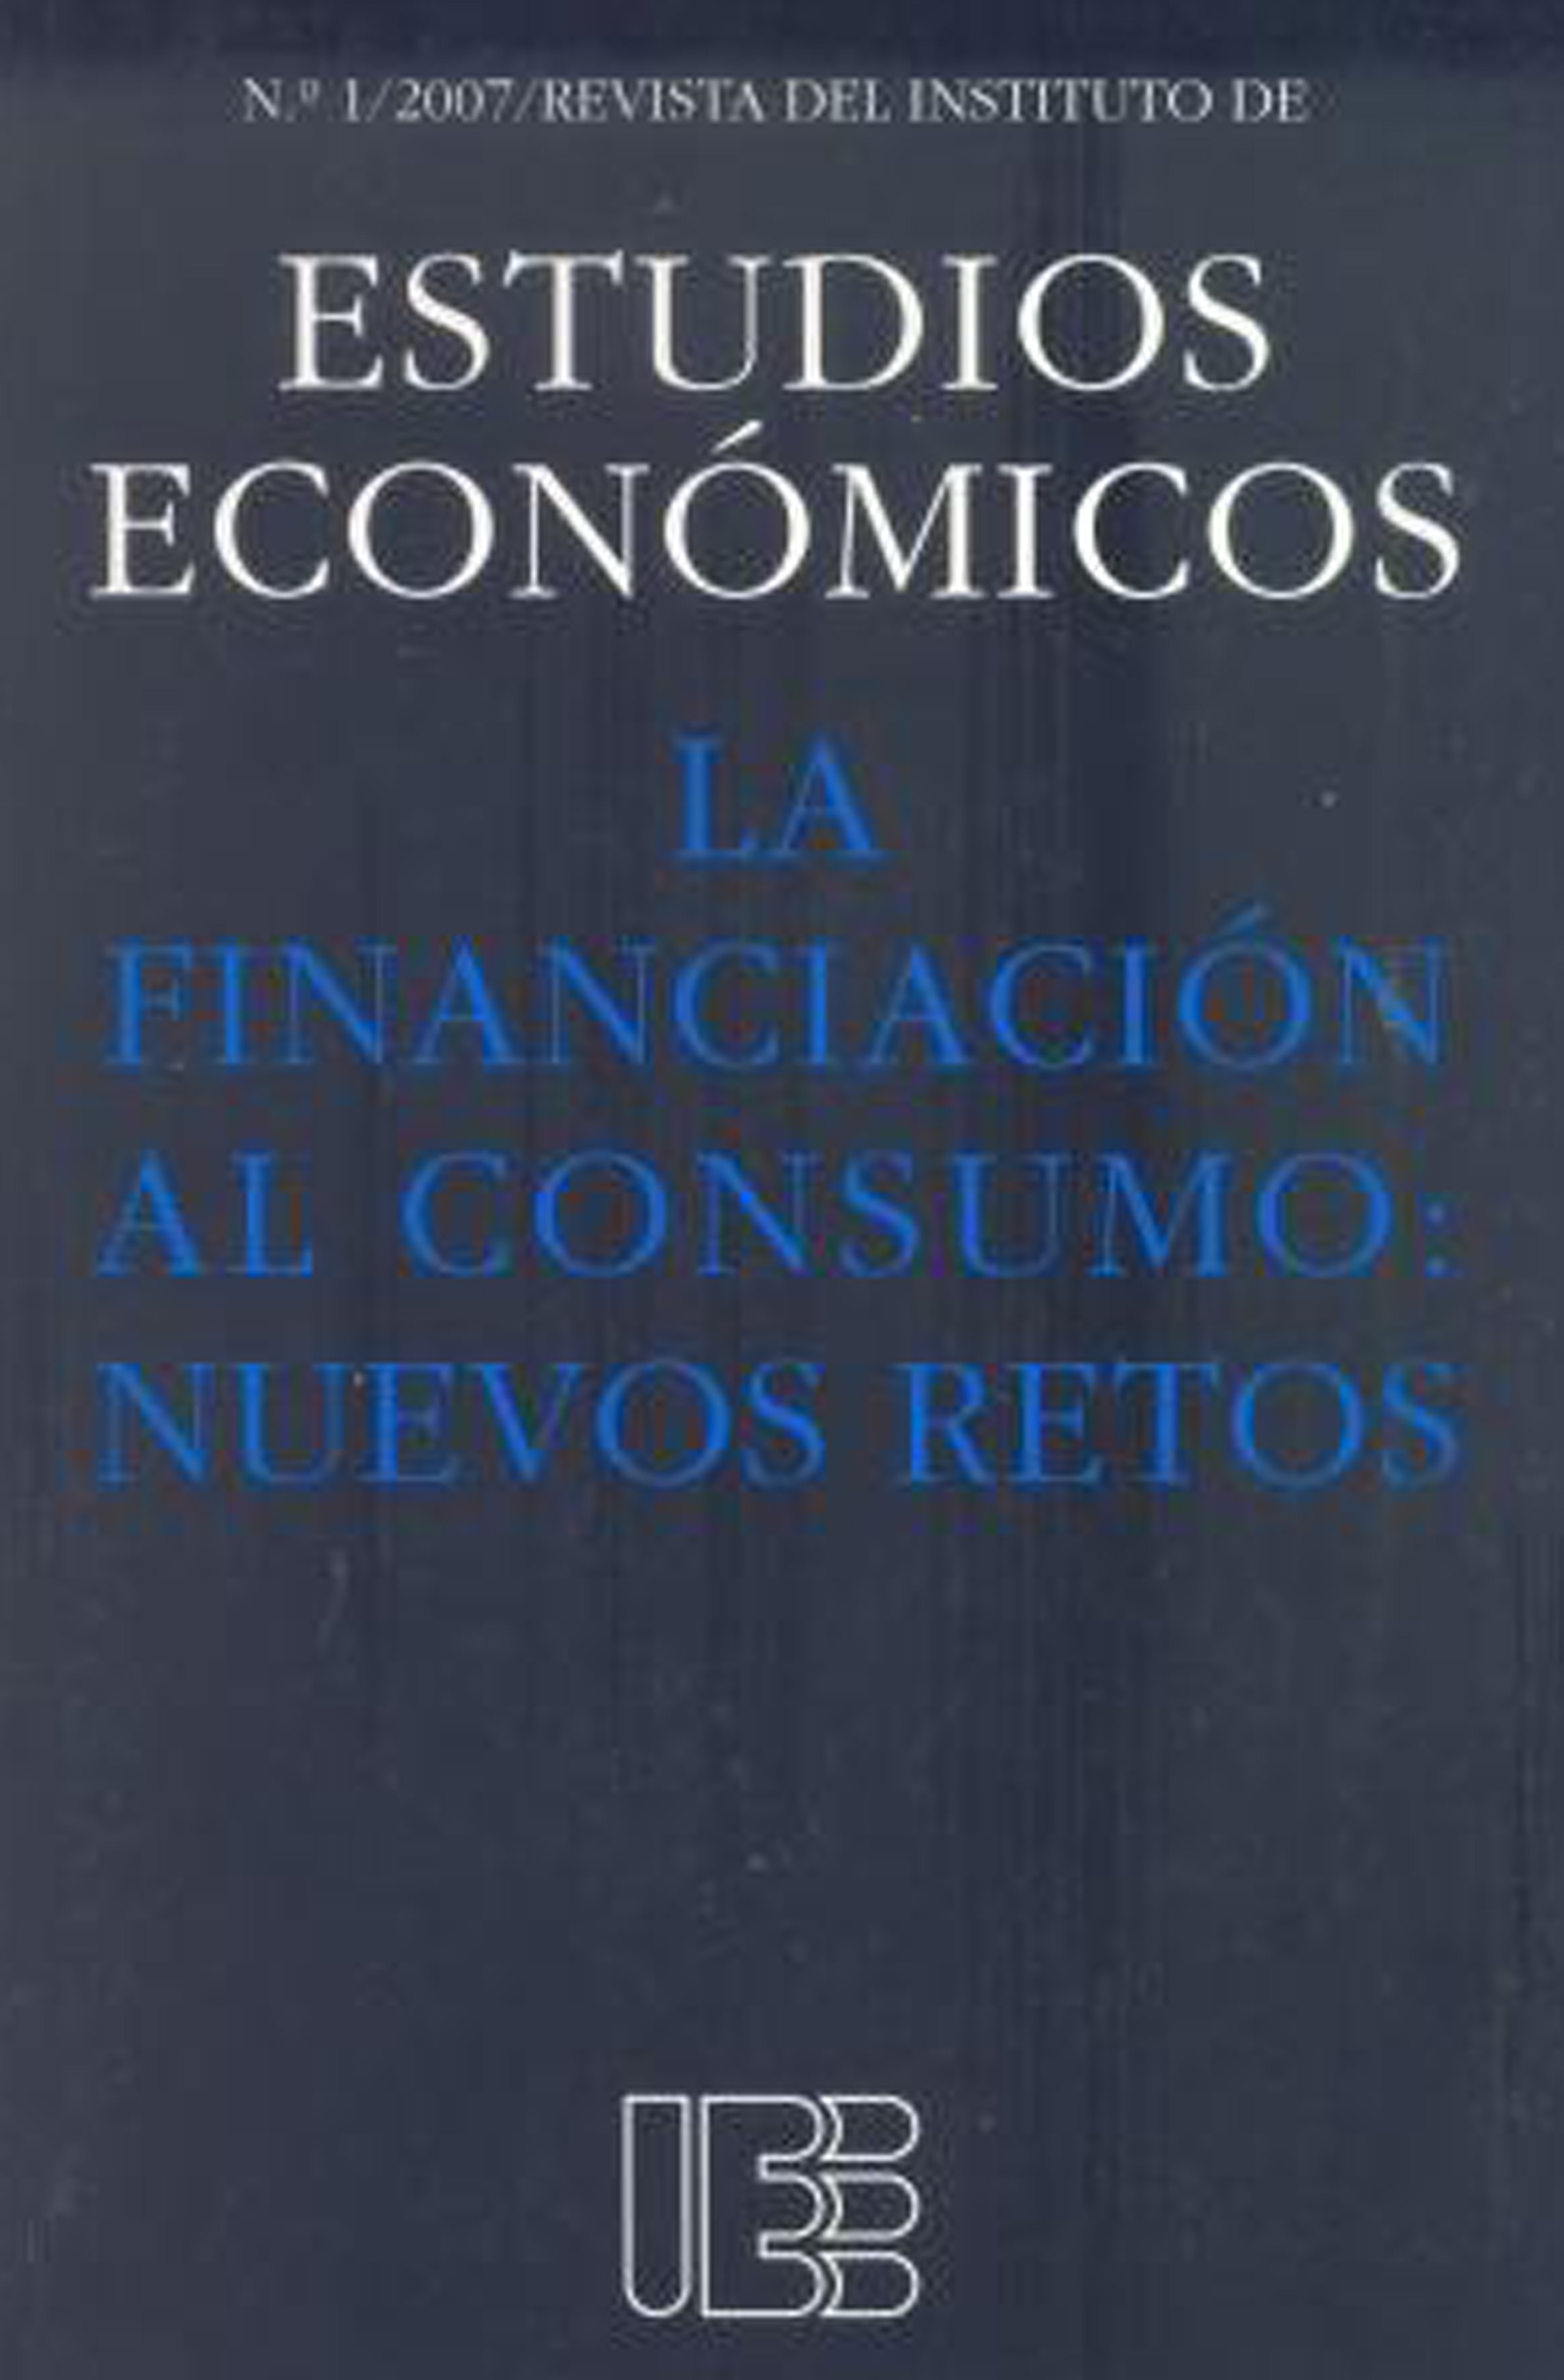 1_financiacion-consumo-retos2007